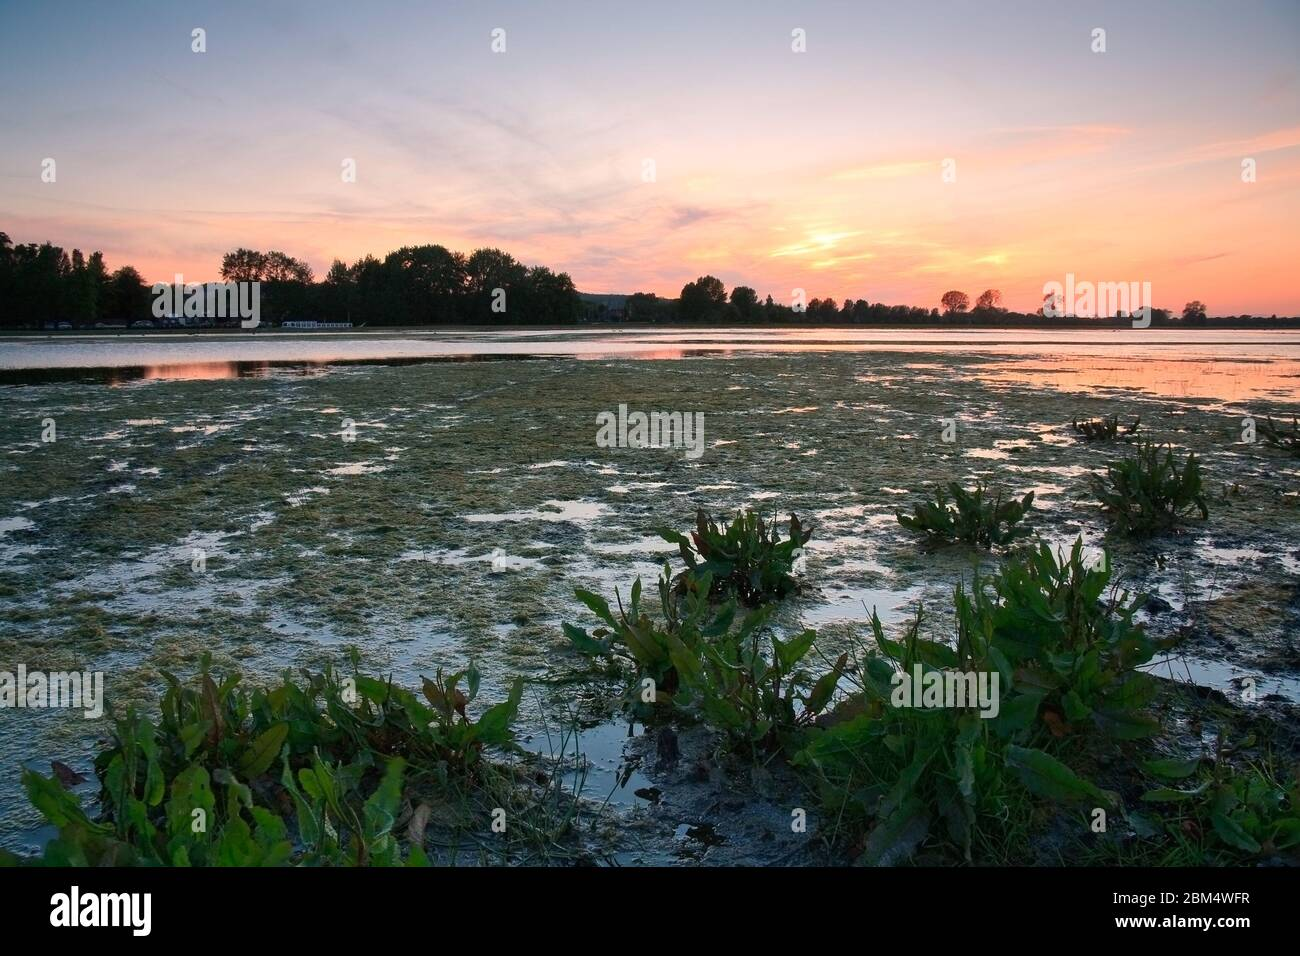 Evening flood plains of river Thames near Oxford. Stock Photo